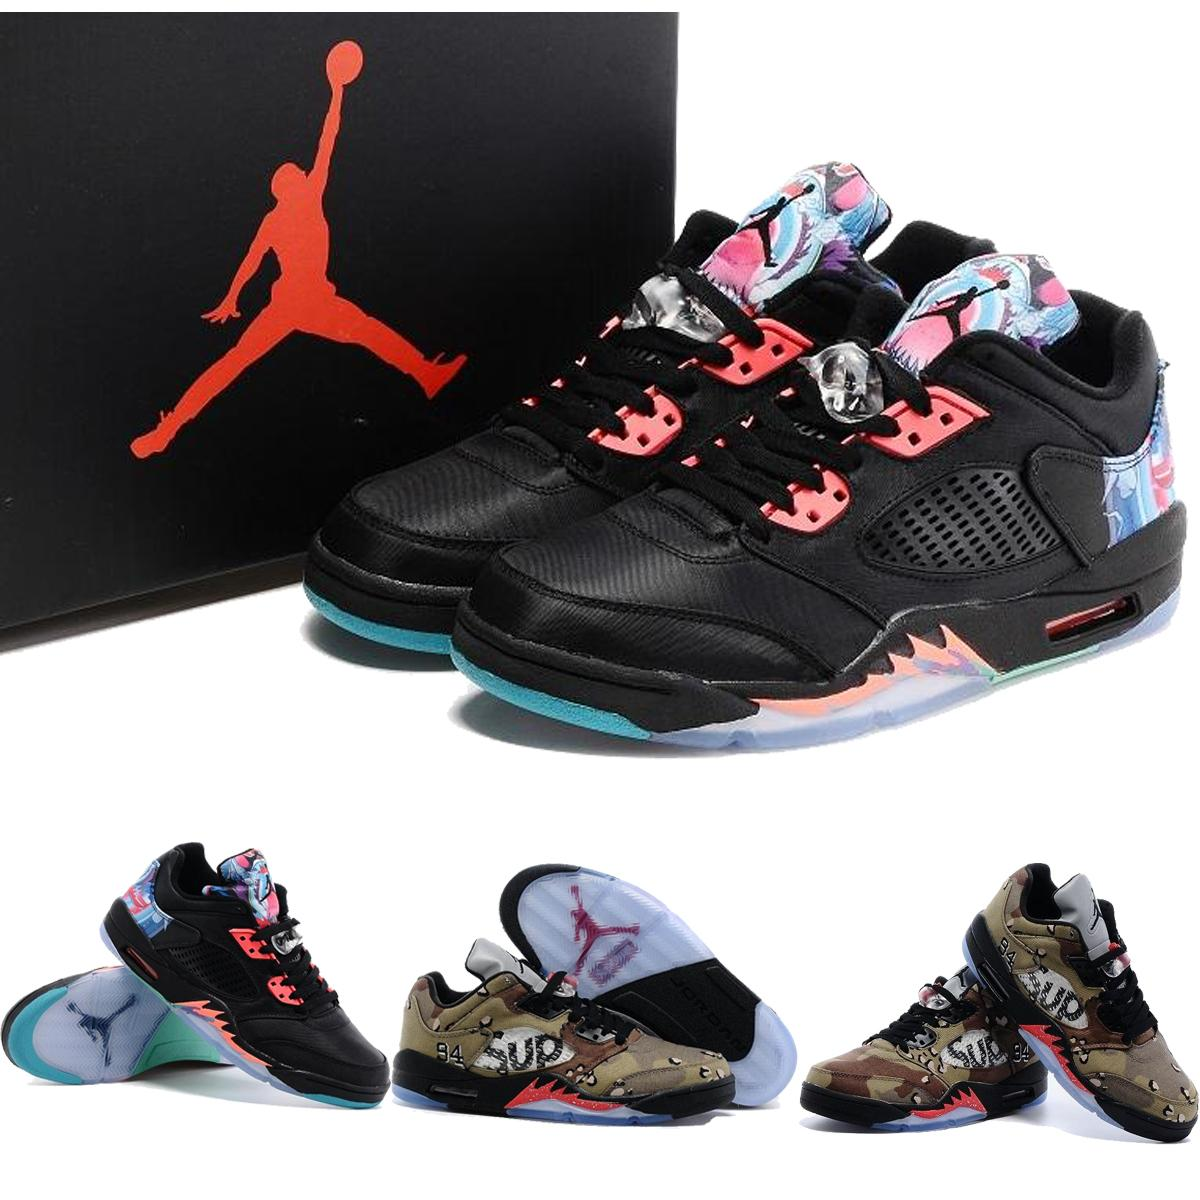 Online Get Cheap Jordan 5 Cheap -Aliexpress.com | Alibaba Group